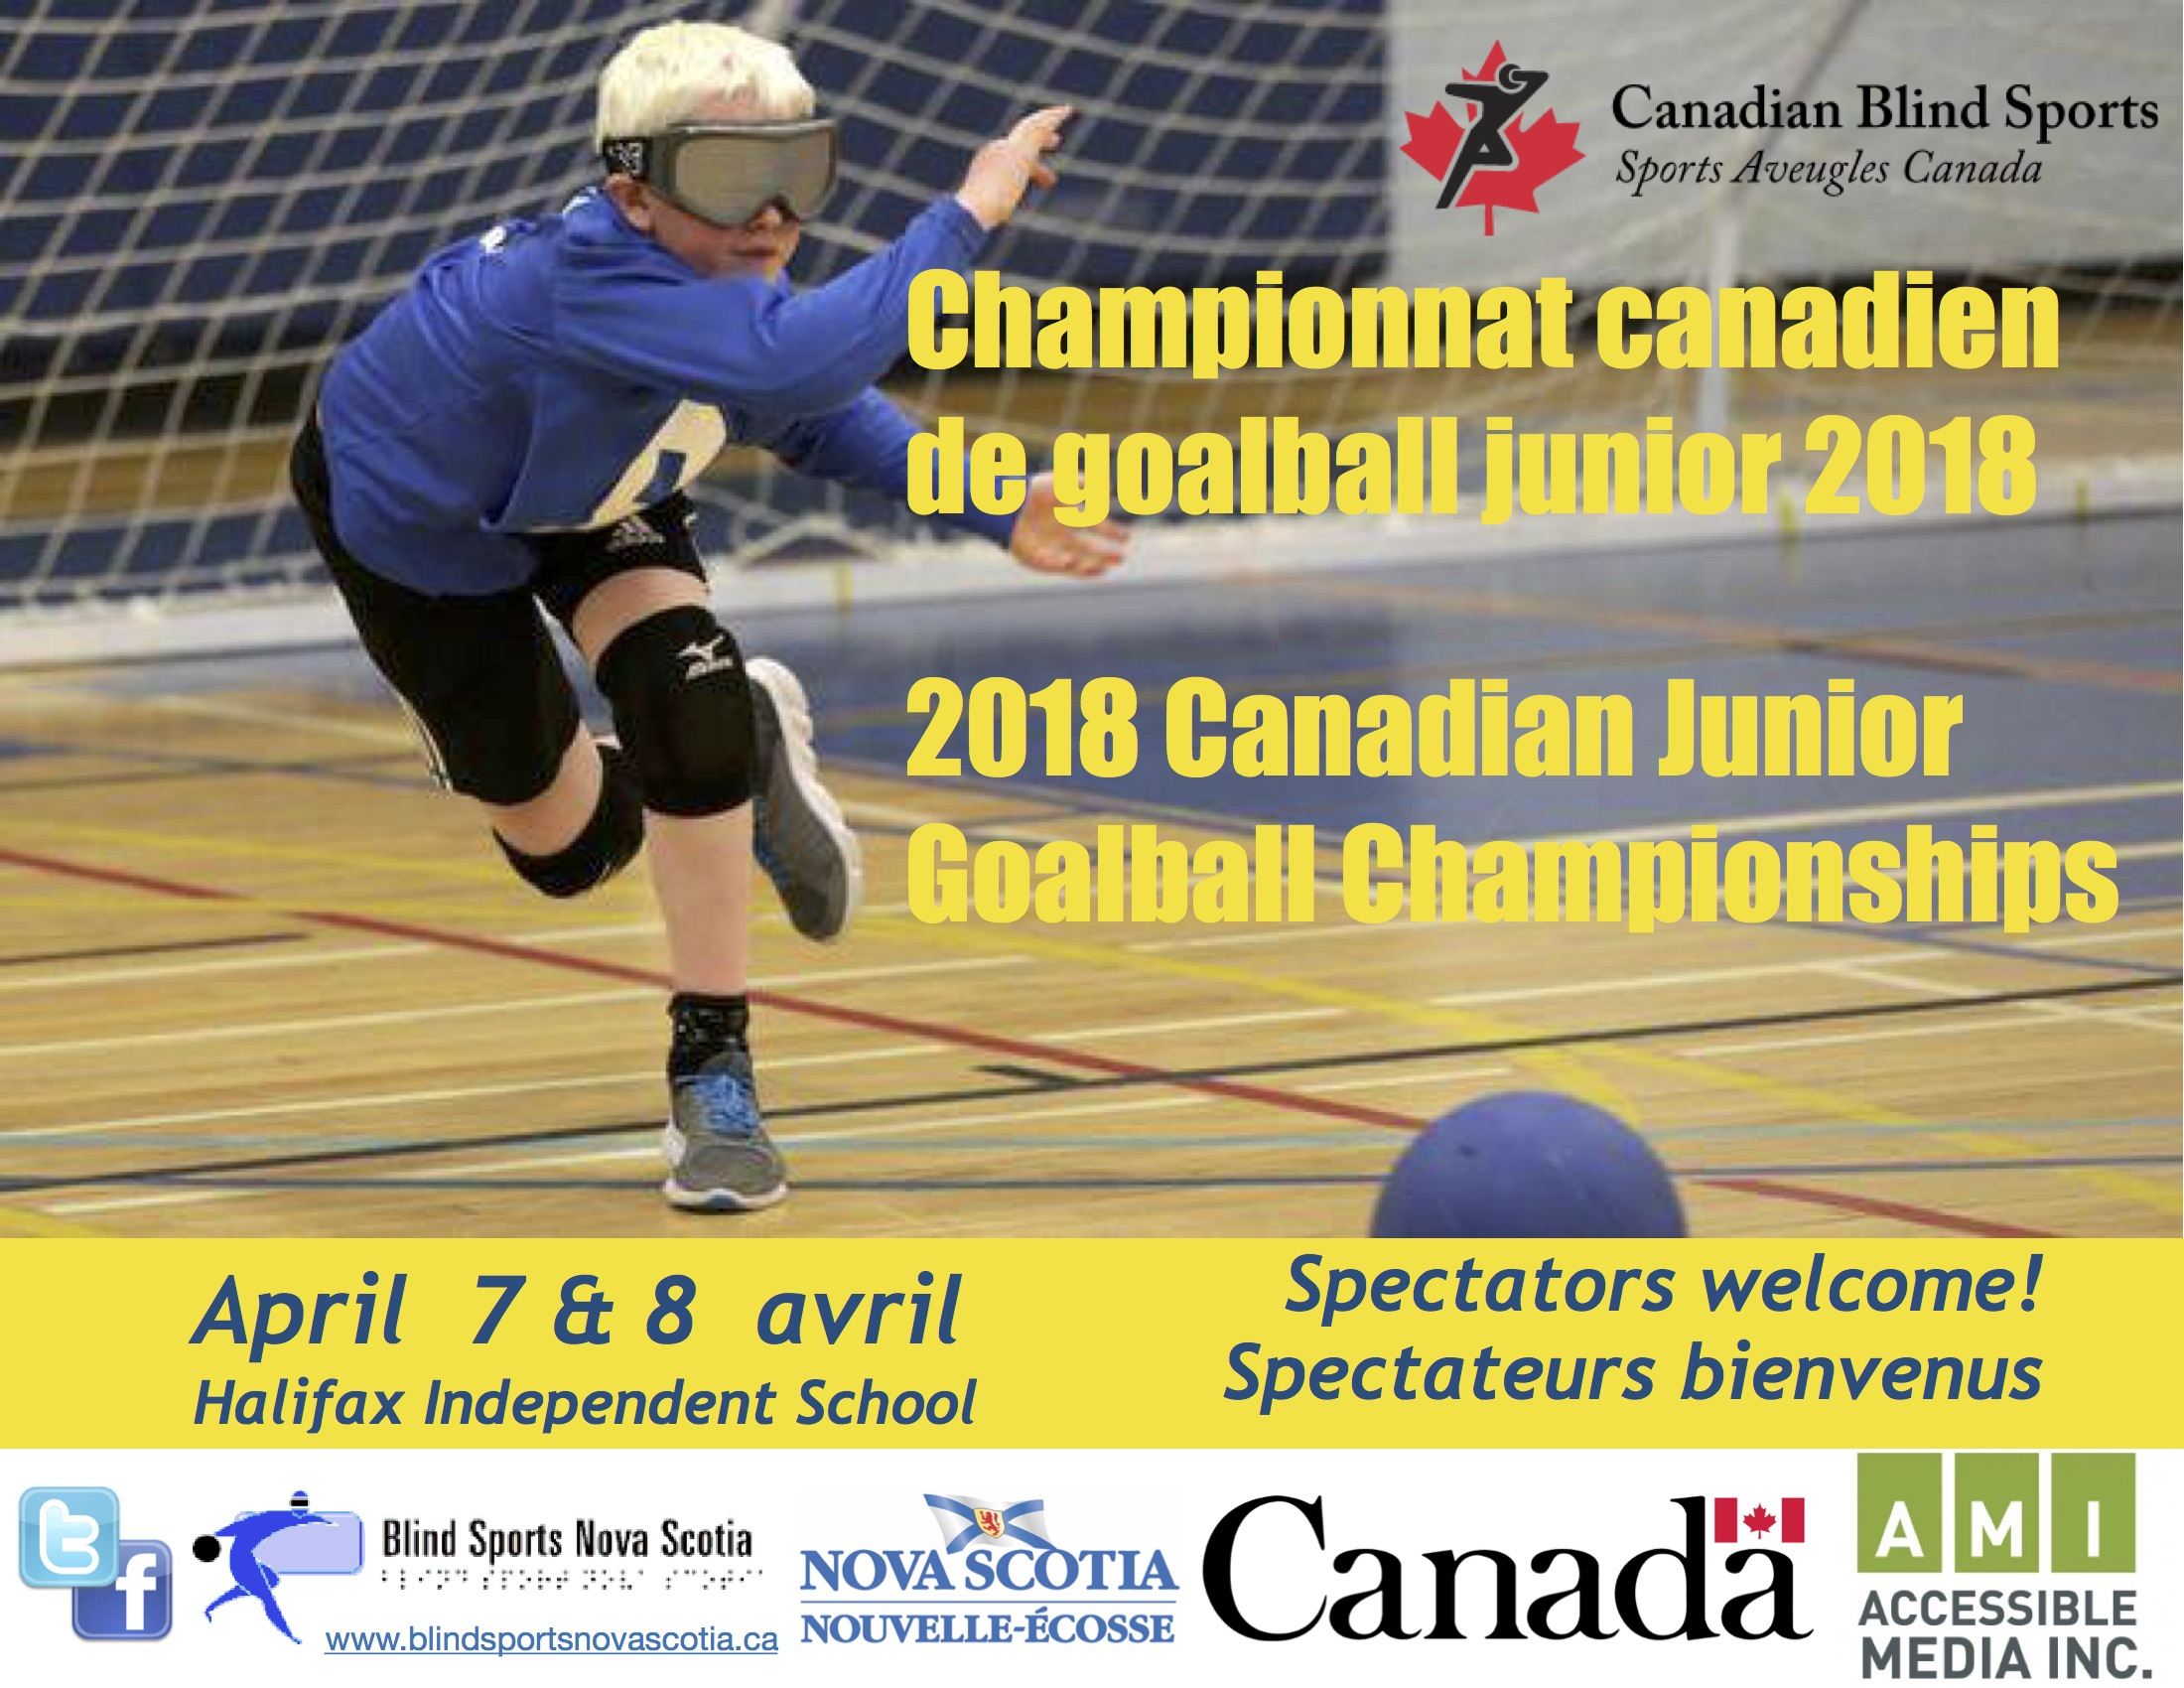 2018 Canadian Junior Goalball Championships Championnat canadien de goalball junior 2018  Pictured is a young goalball player, wearing eyeshades and a blue jersey, launching a shot down the court.   April 7 & 8 avril  Halifax Independent School   Spectators welcome! Spectateurs bienvenus   Logos:  Canadian Blind Sports Association / Sports Aveugles Canada  Facebook & Twitter  Blind Sports Nova Scotia - www.blindsportsnovascotia.ca Government of Nova Scotia / Nouvelle Ecosse  Government of Canada Accessible Media Inc.